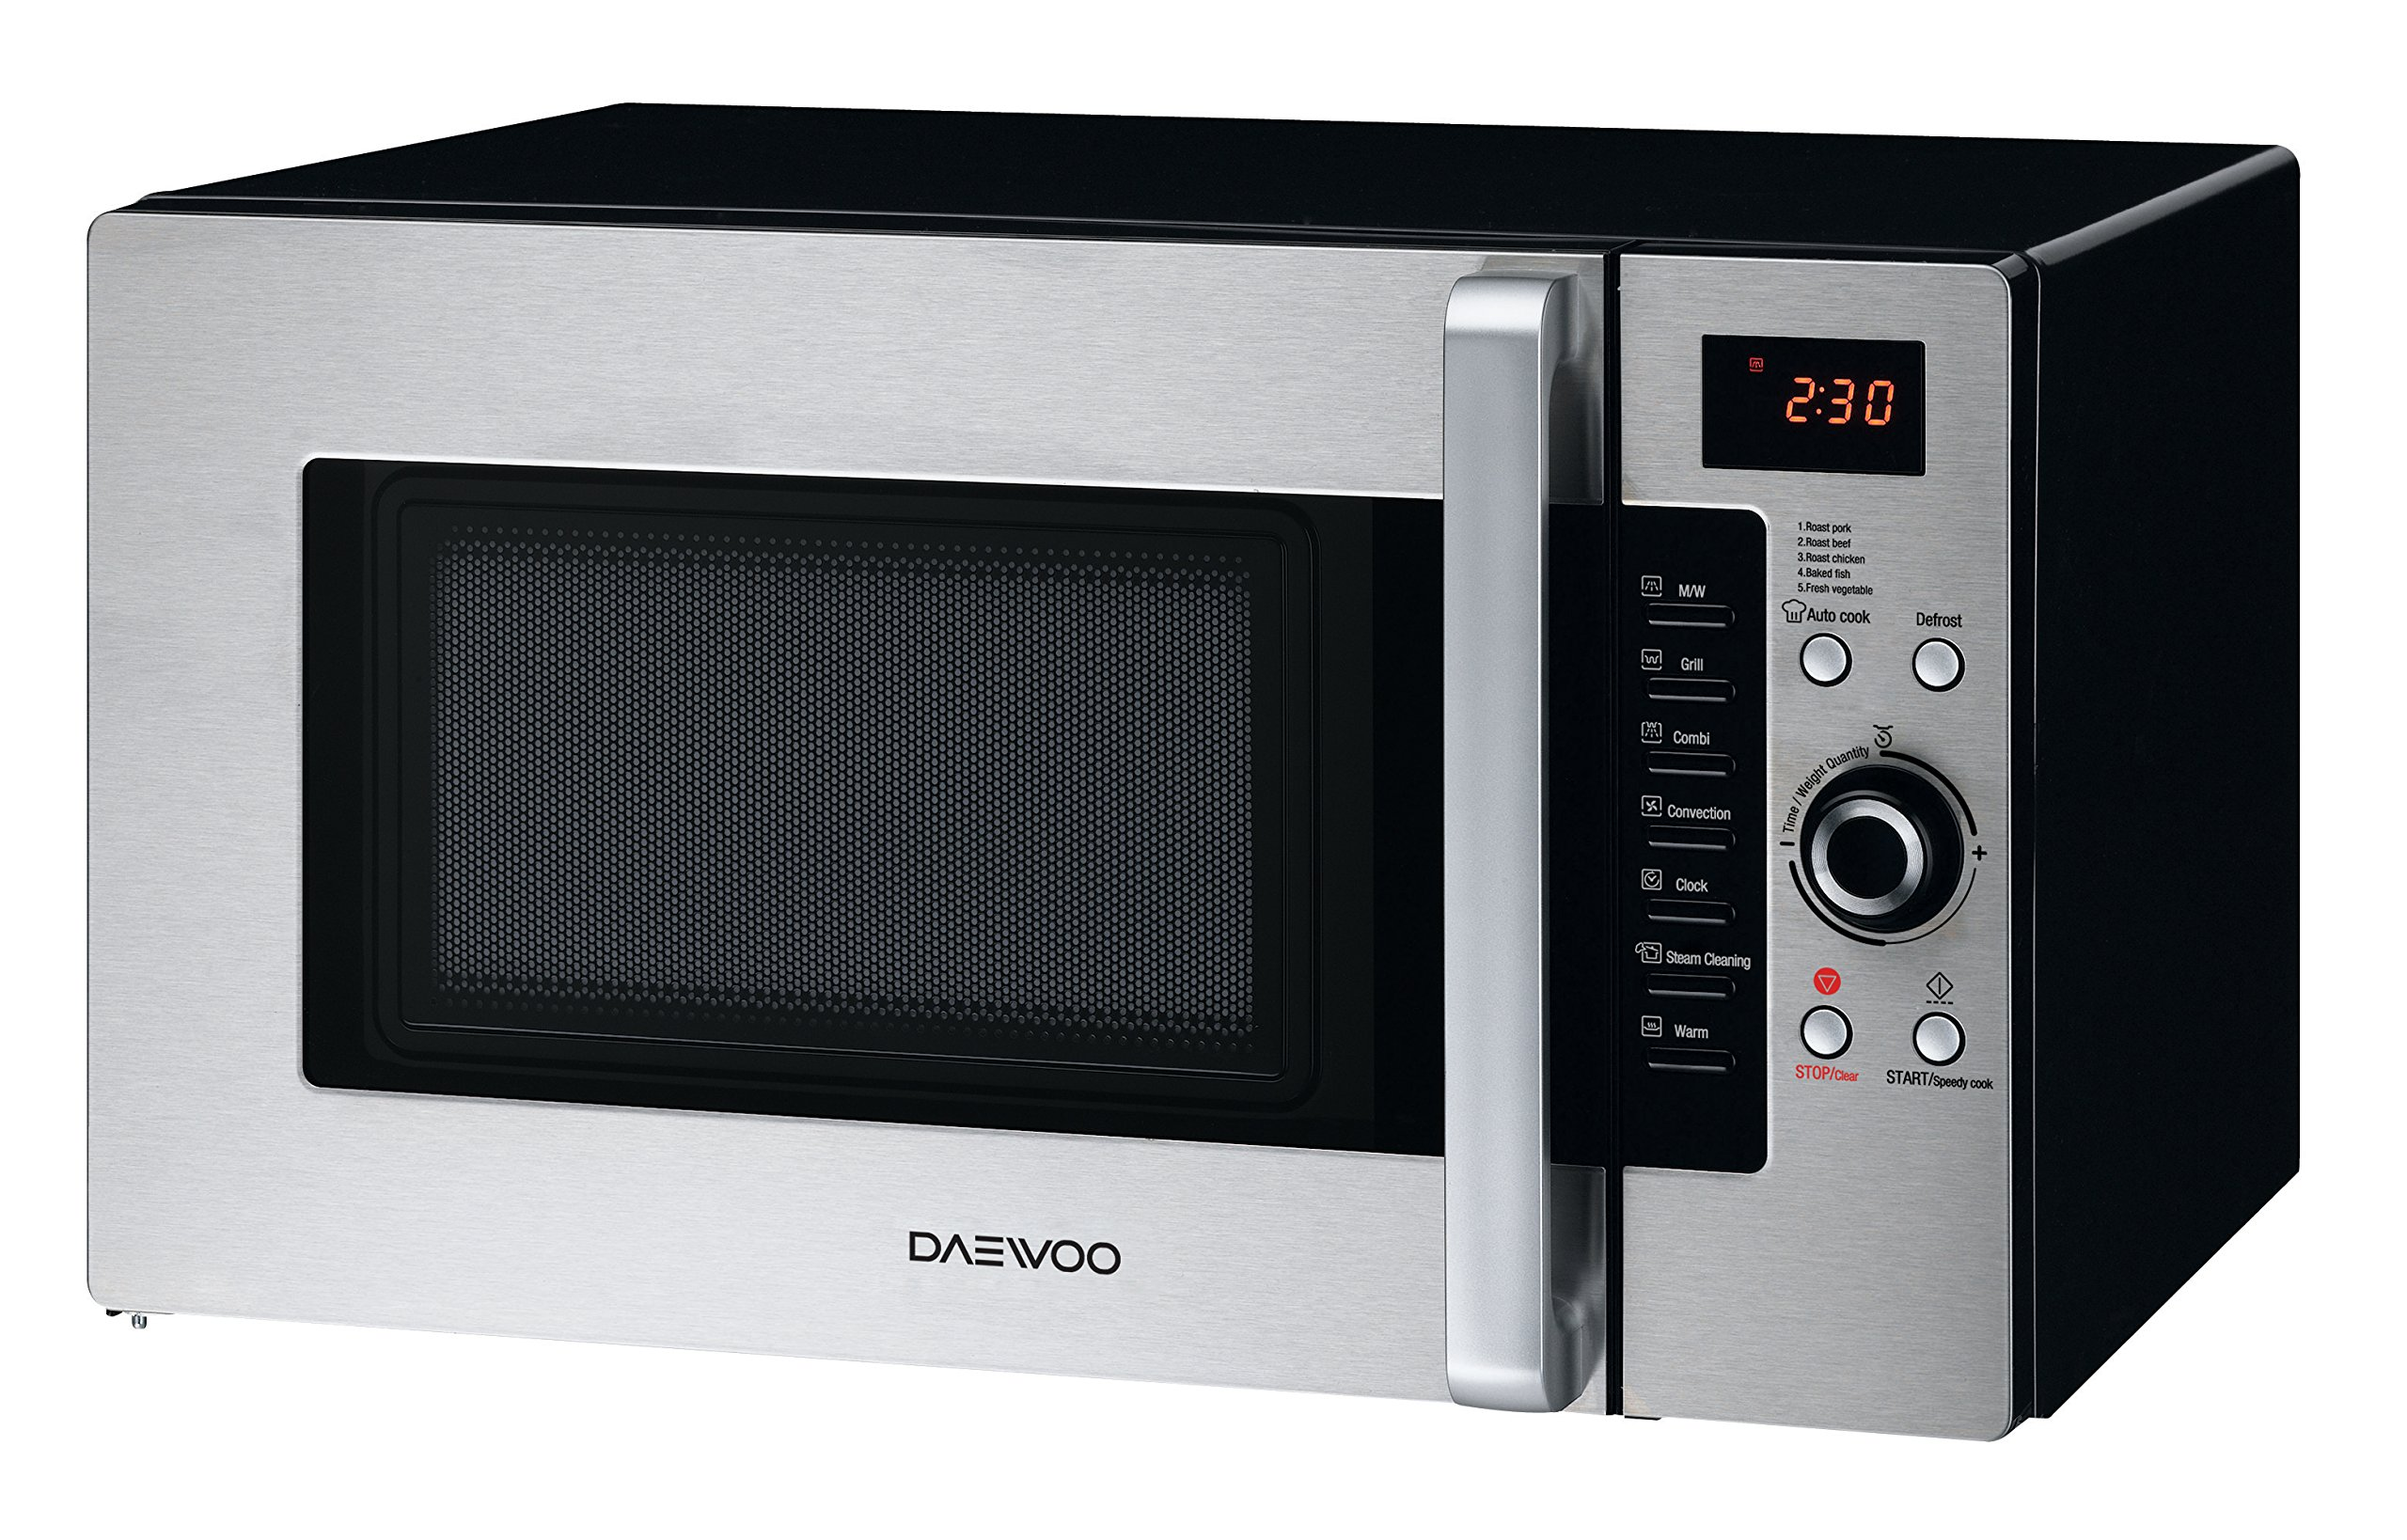 Daewoo KOC-9Q4DS Convection Microwave Oven 1.0 Cu. Ft., 900W | Stainless Steel by Daewoo (Image #3)